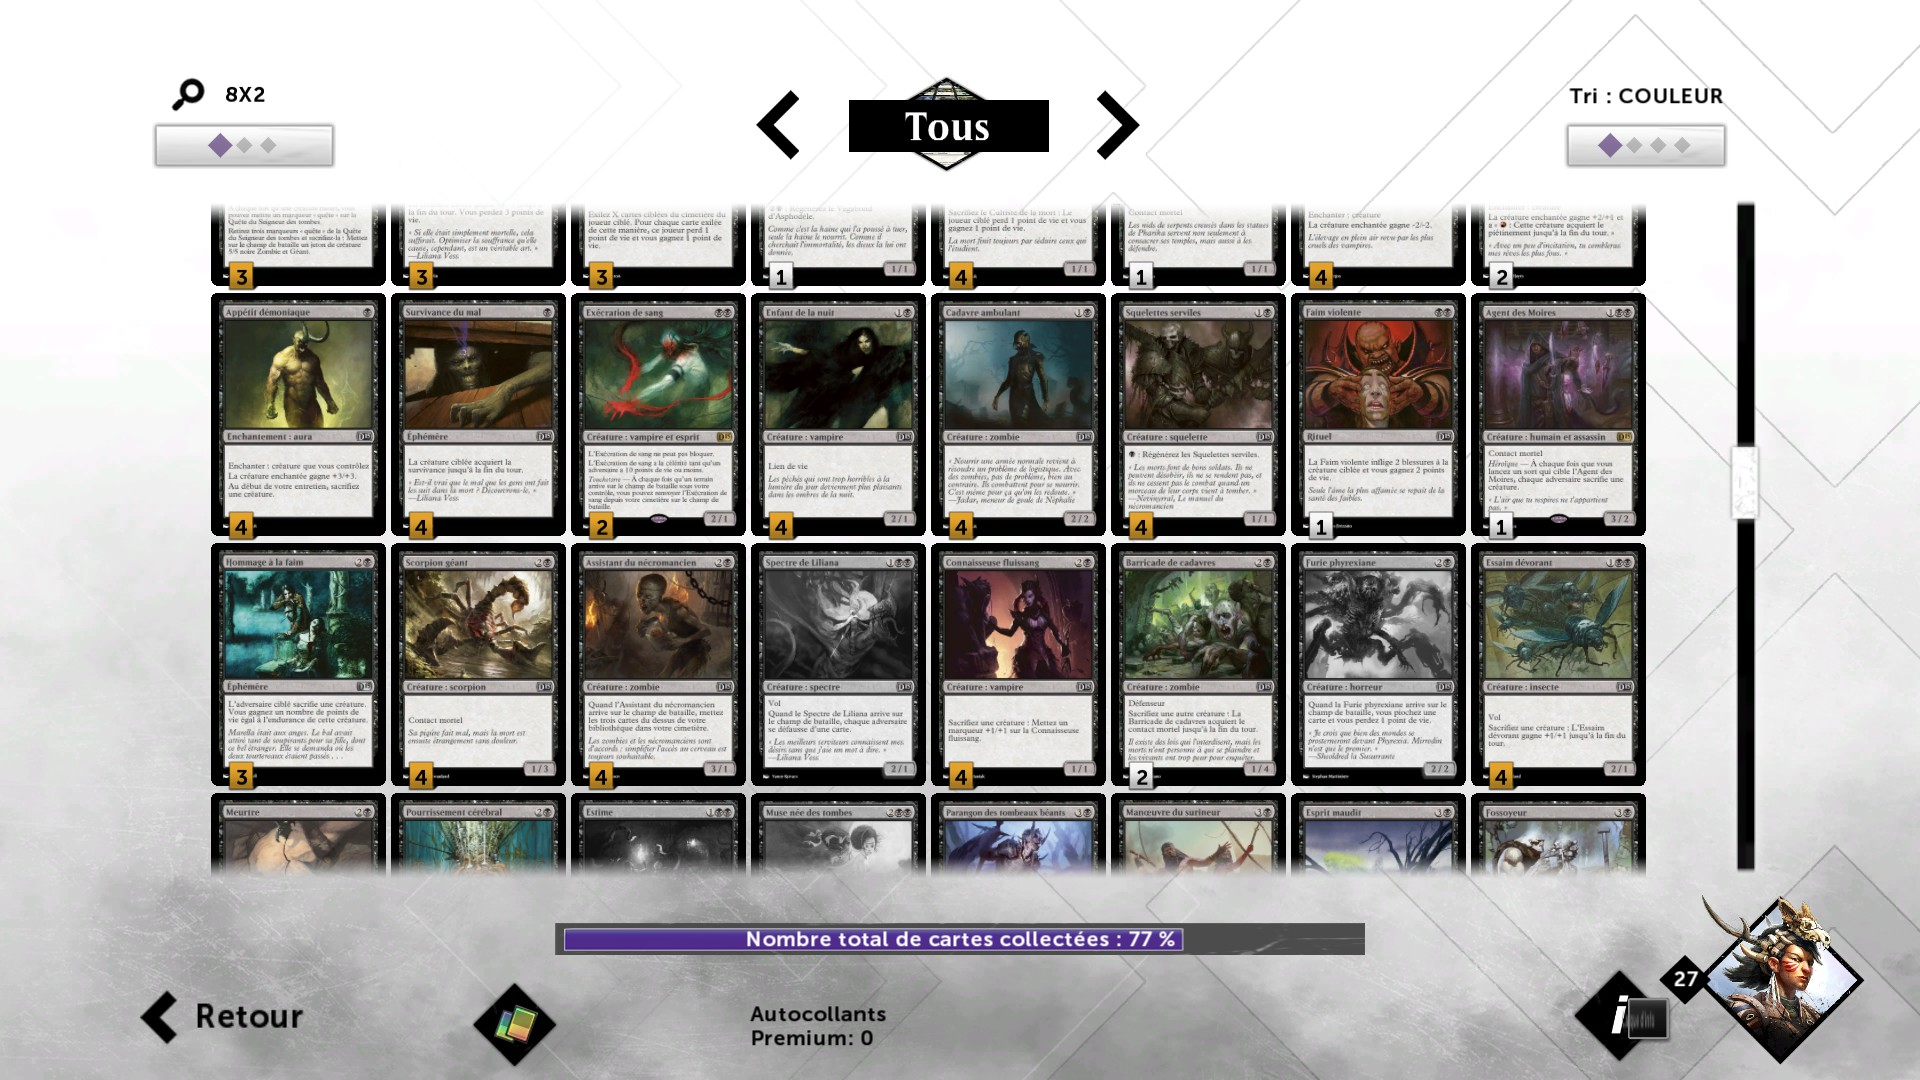 la version 2015 de Magic The Gathering n'égale pas du tout celle de 2014